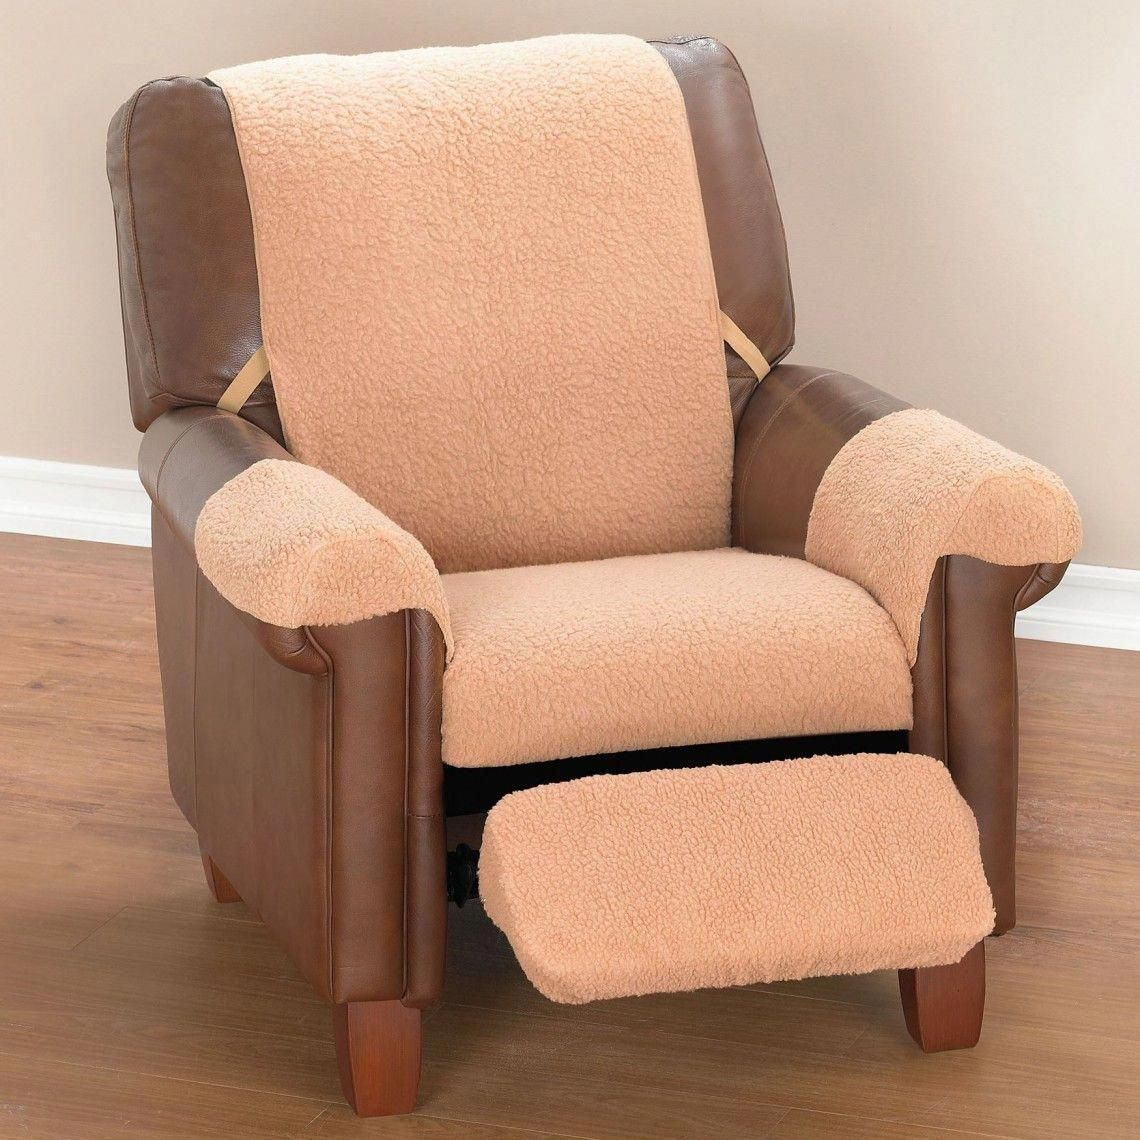 Recliners stylish design images